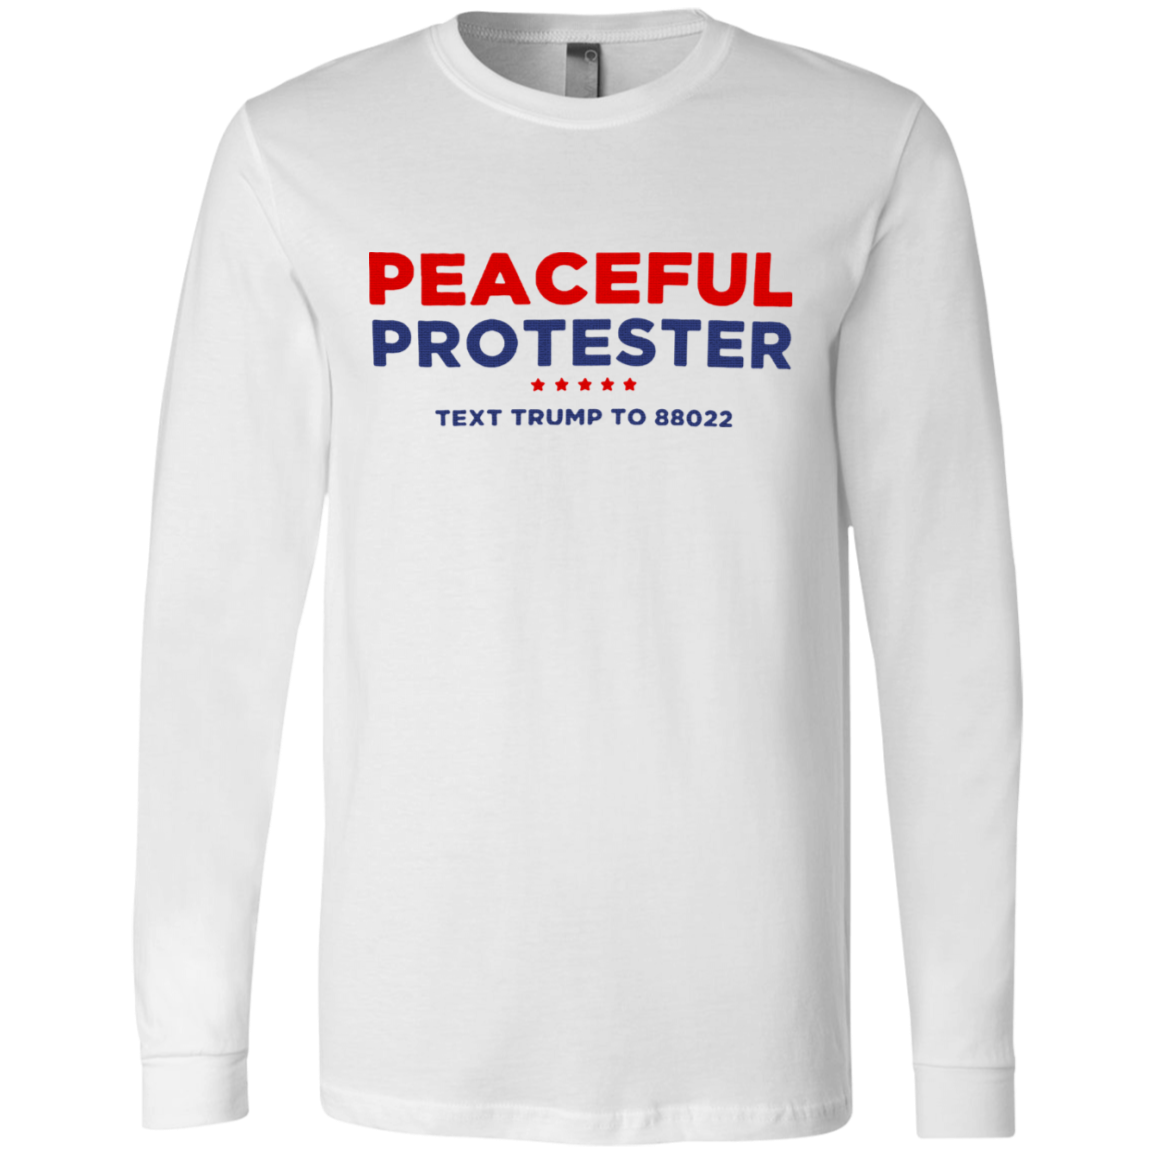 Peaceful protester shirt